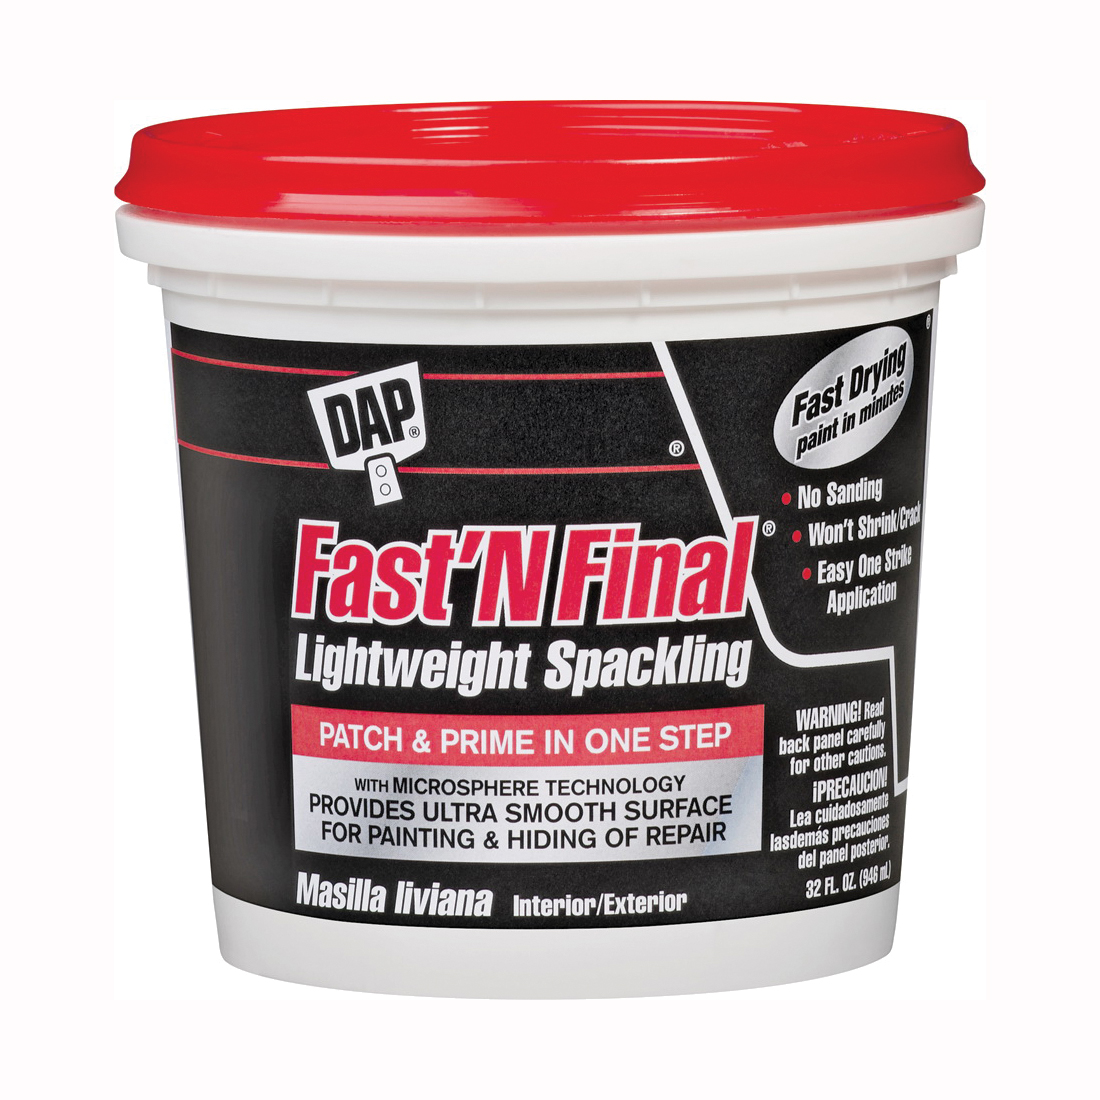 Picture of DAP 12142 Spackling Paste White, White, 1 qt, Tub